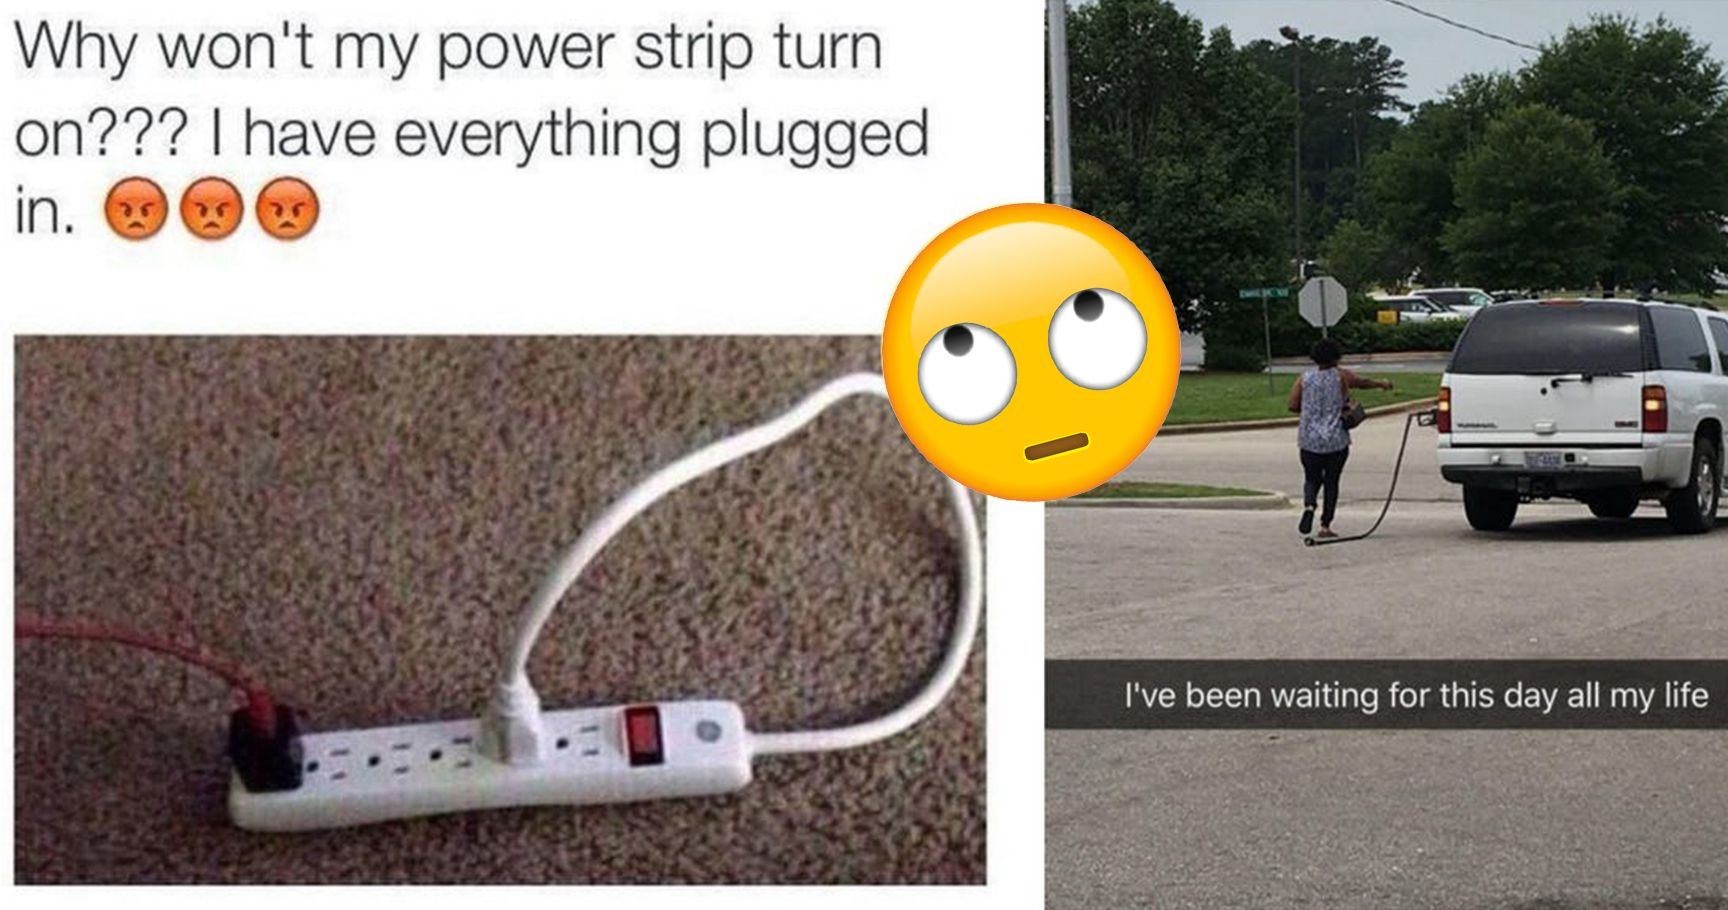 15 People Who Aren't The Brightest Crayons In The Box